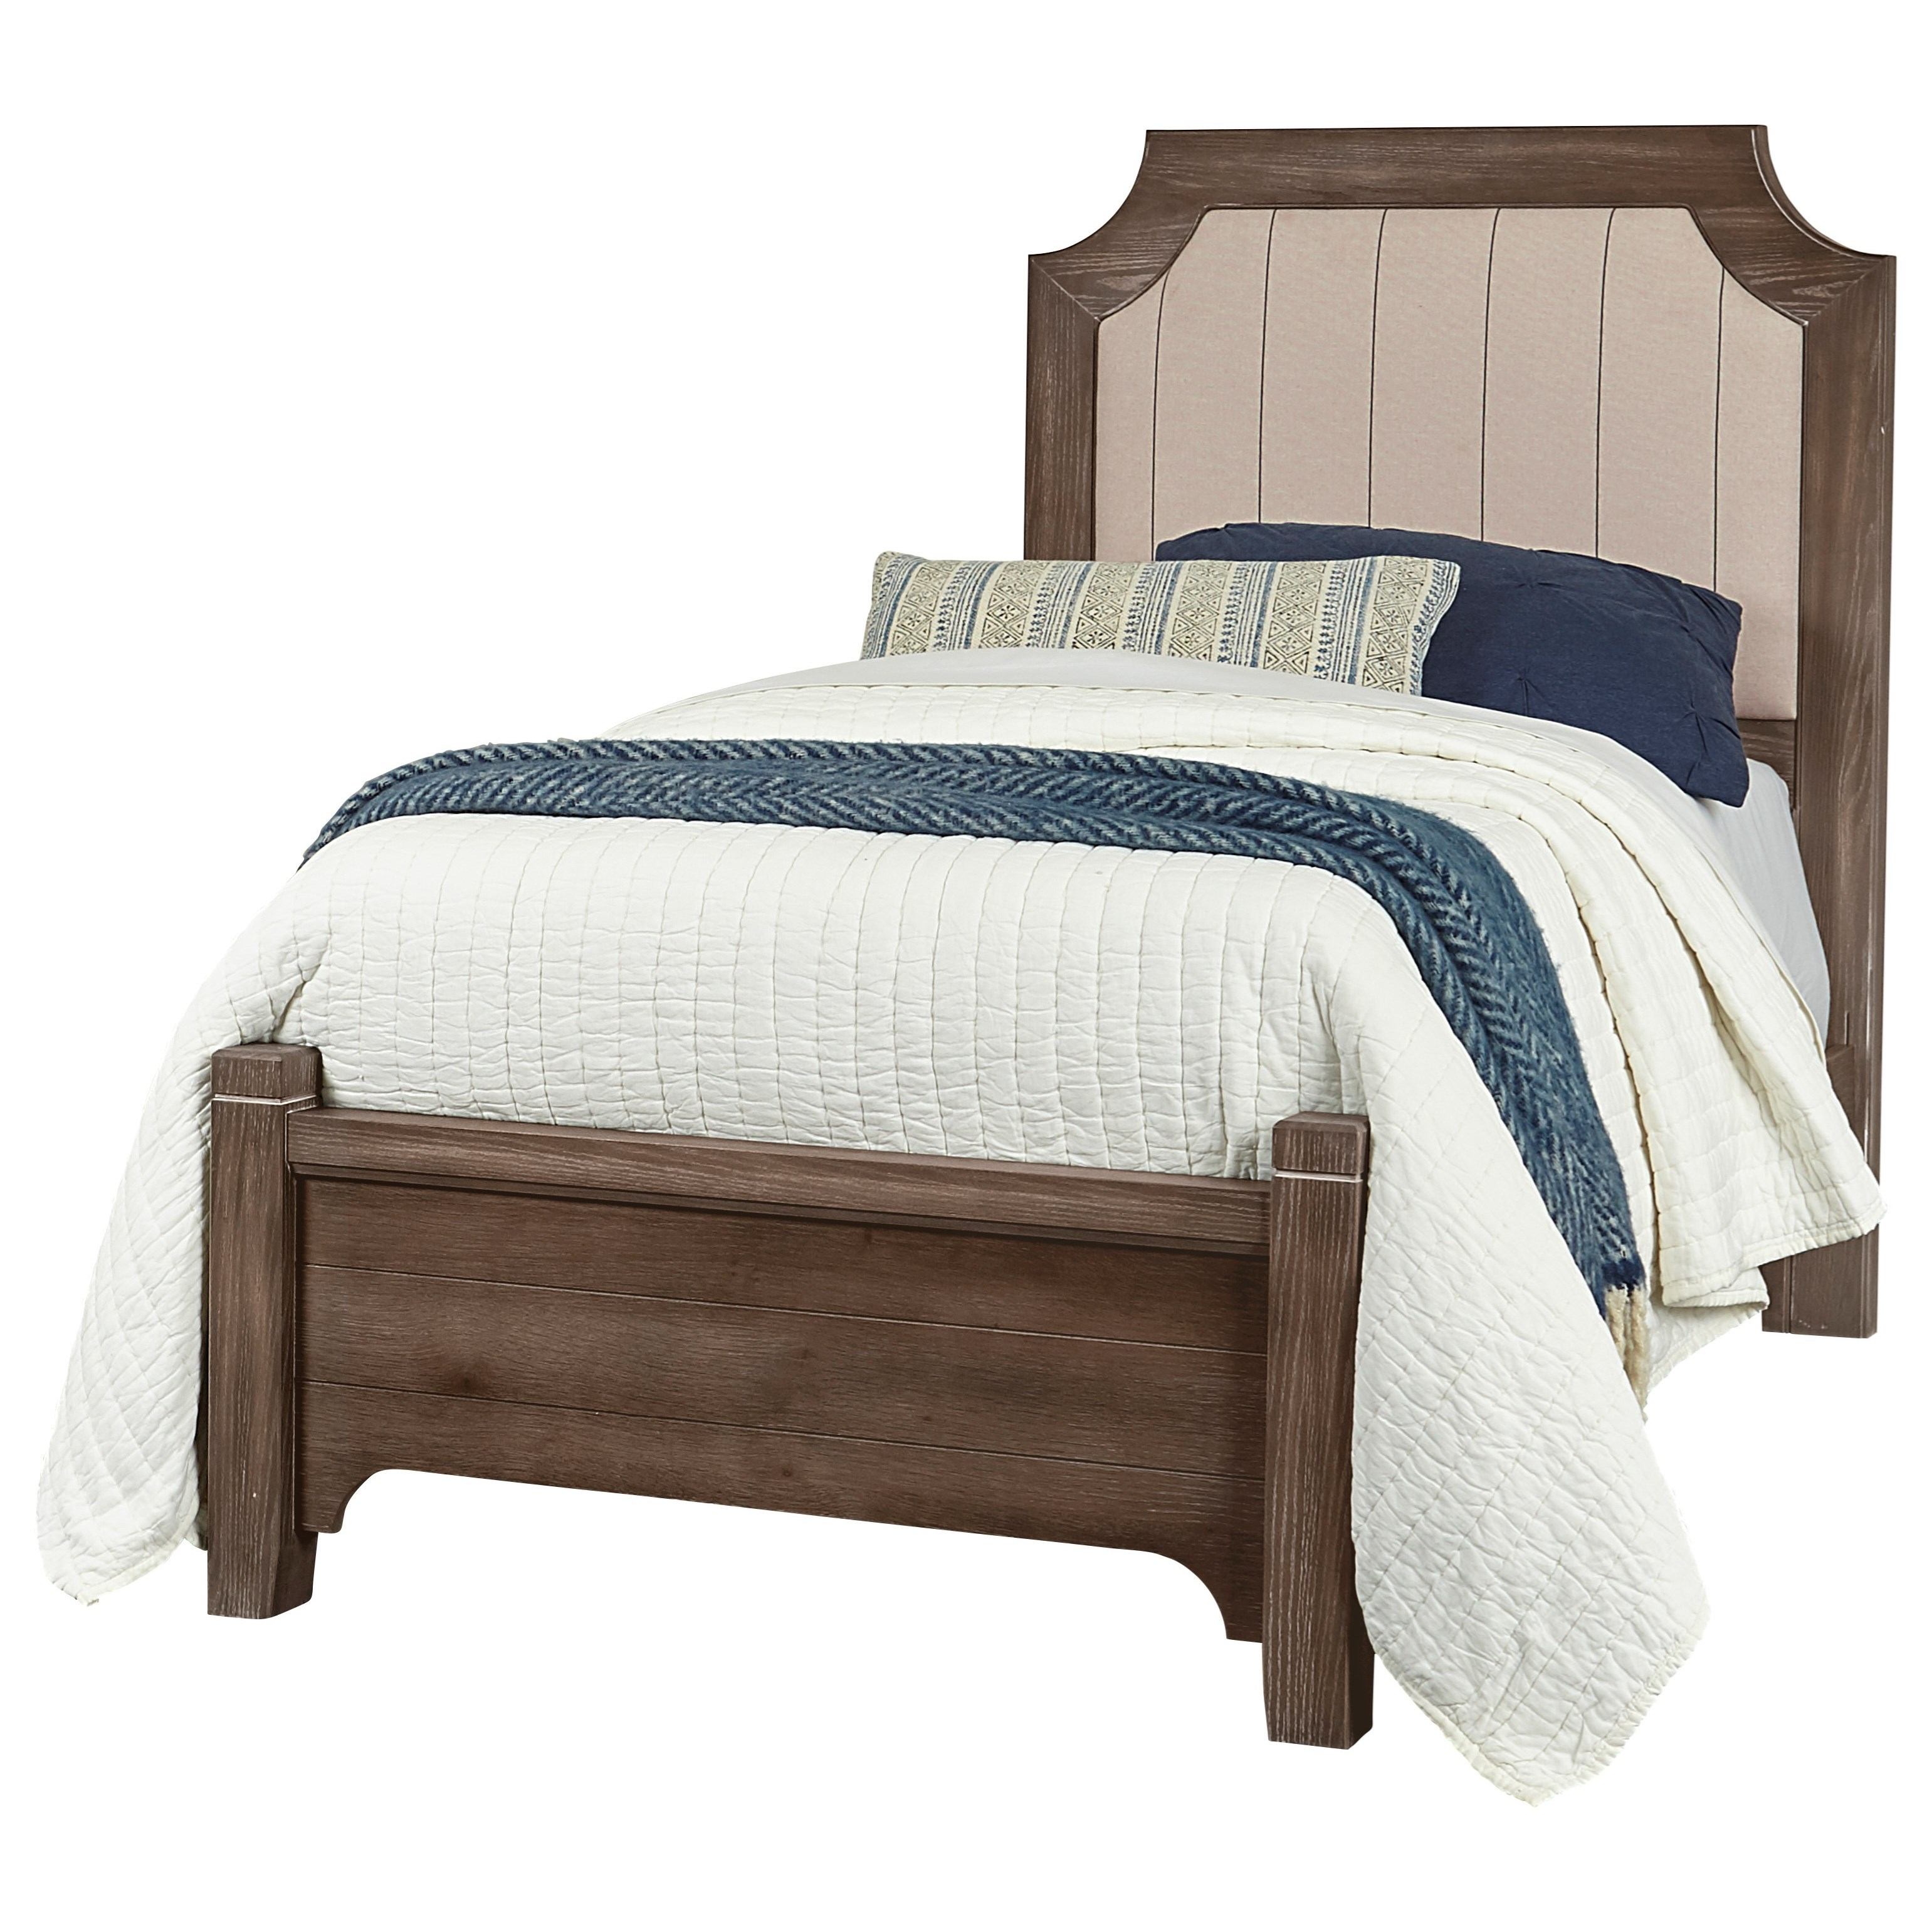 Bungalow Full Upholstered Bed Low Profile Footboard by Vaughan-Bassett at Crowley Furniture & Mattress